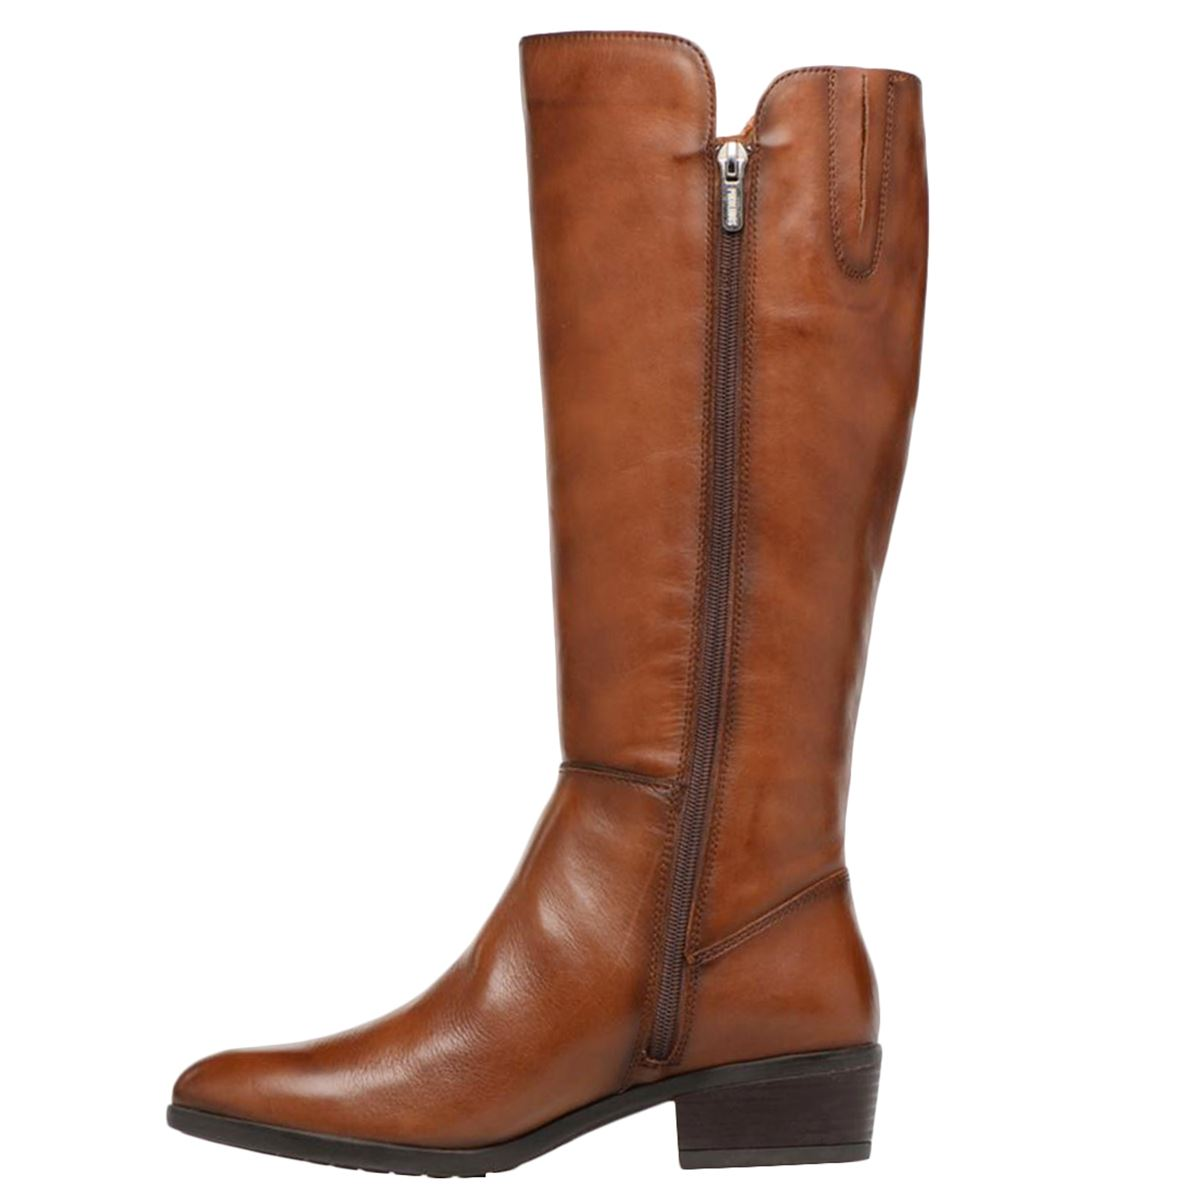 2ff9712240b6 Pikolinos Daroca Leather High-profile Knee-High Zip-Up Womens Boots ...